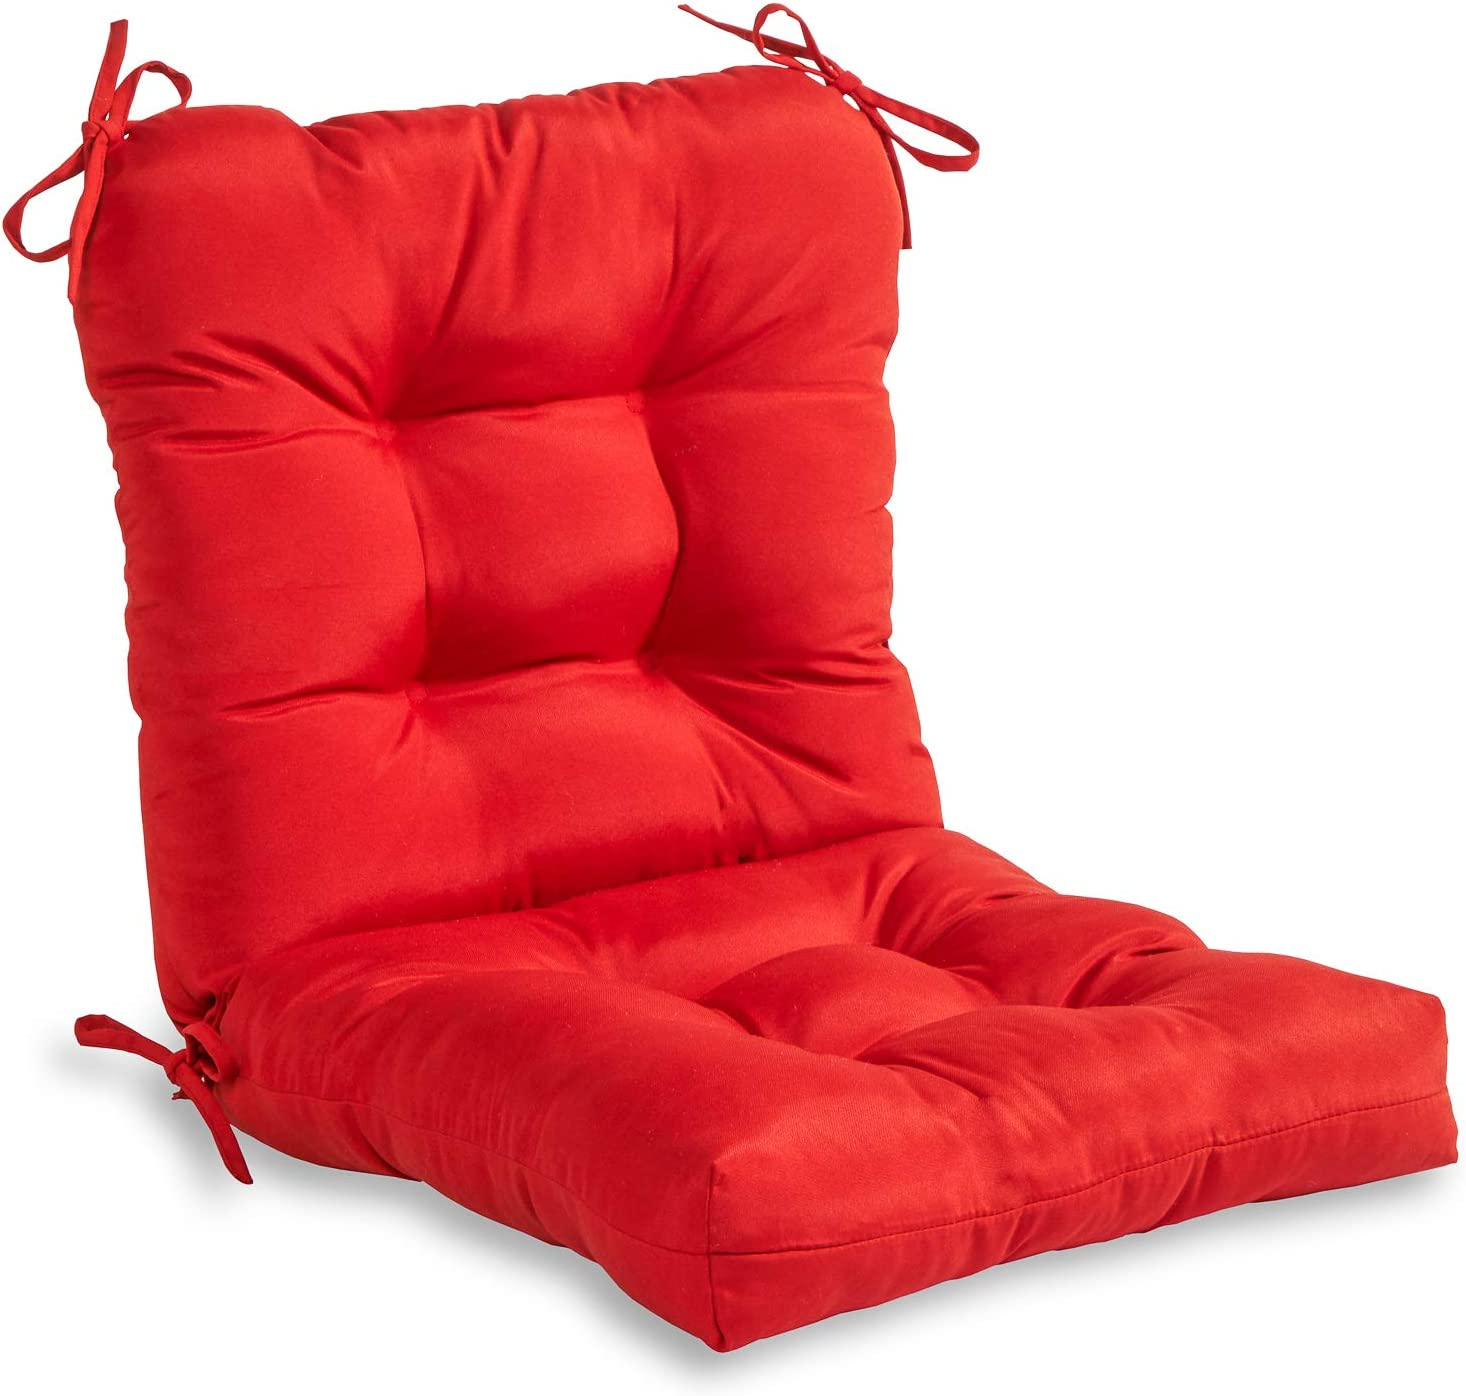 South Pine Porch AM5815-SALSA Solid Salsa Red Outdoor Seat/Back Chair Cushion